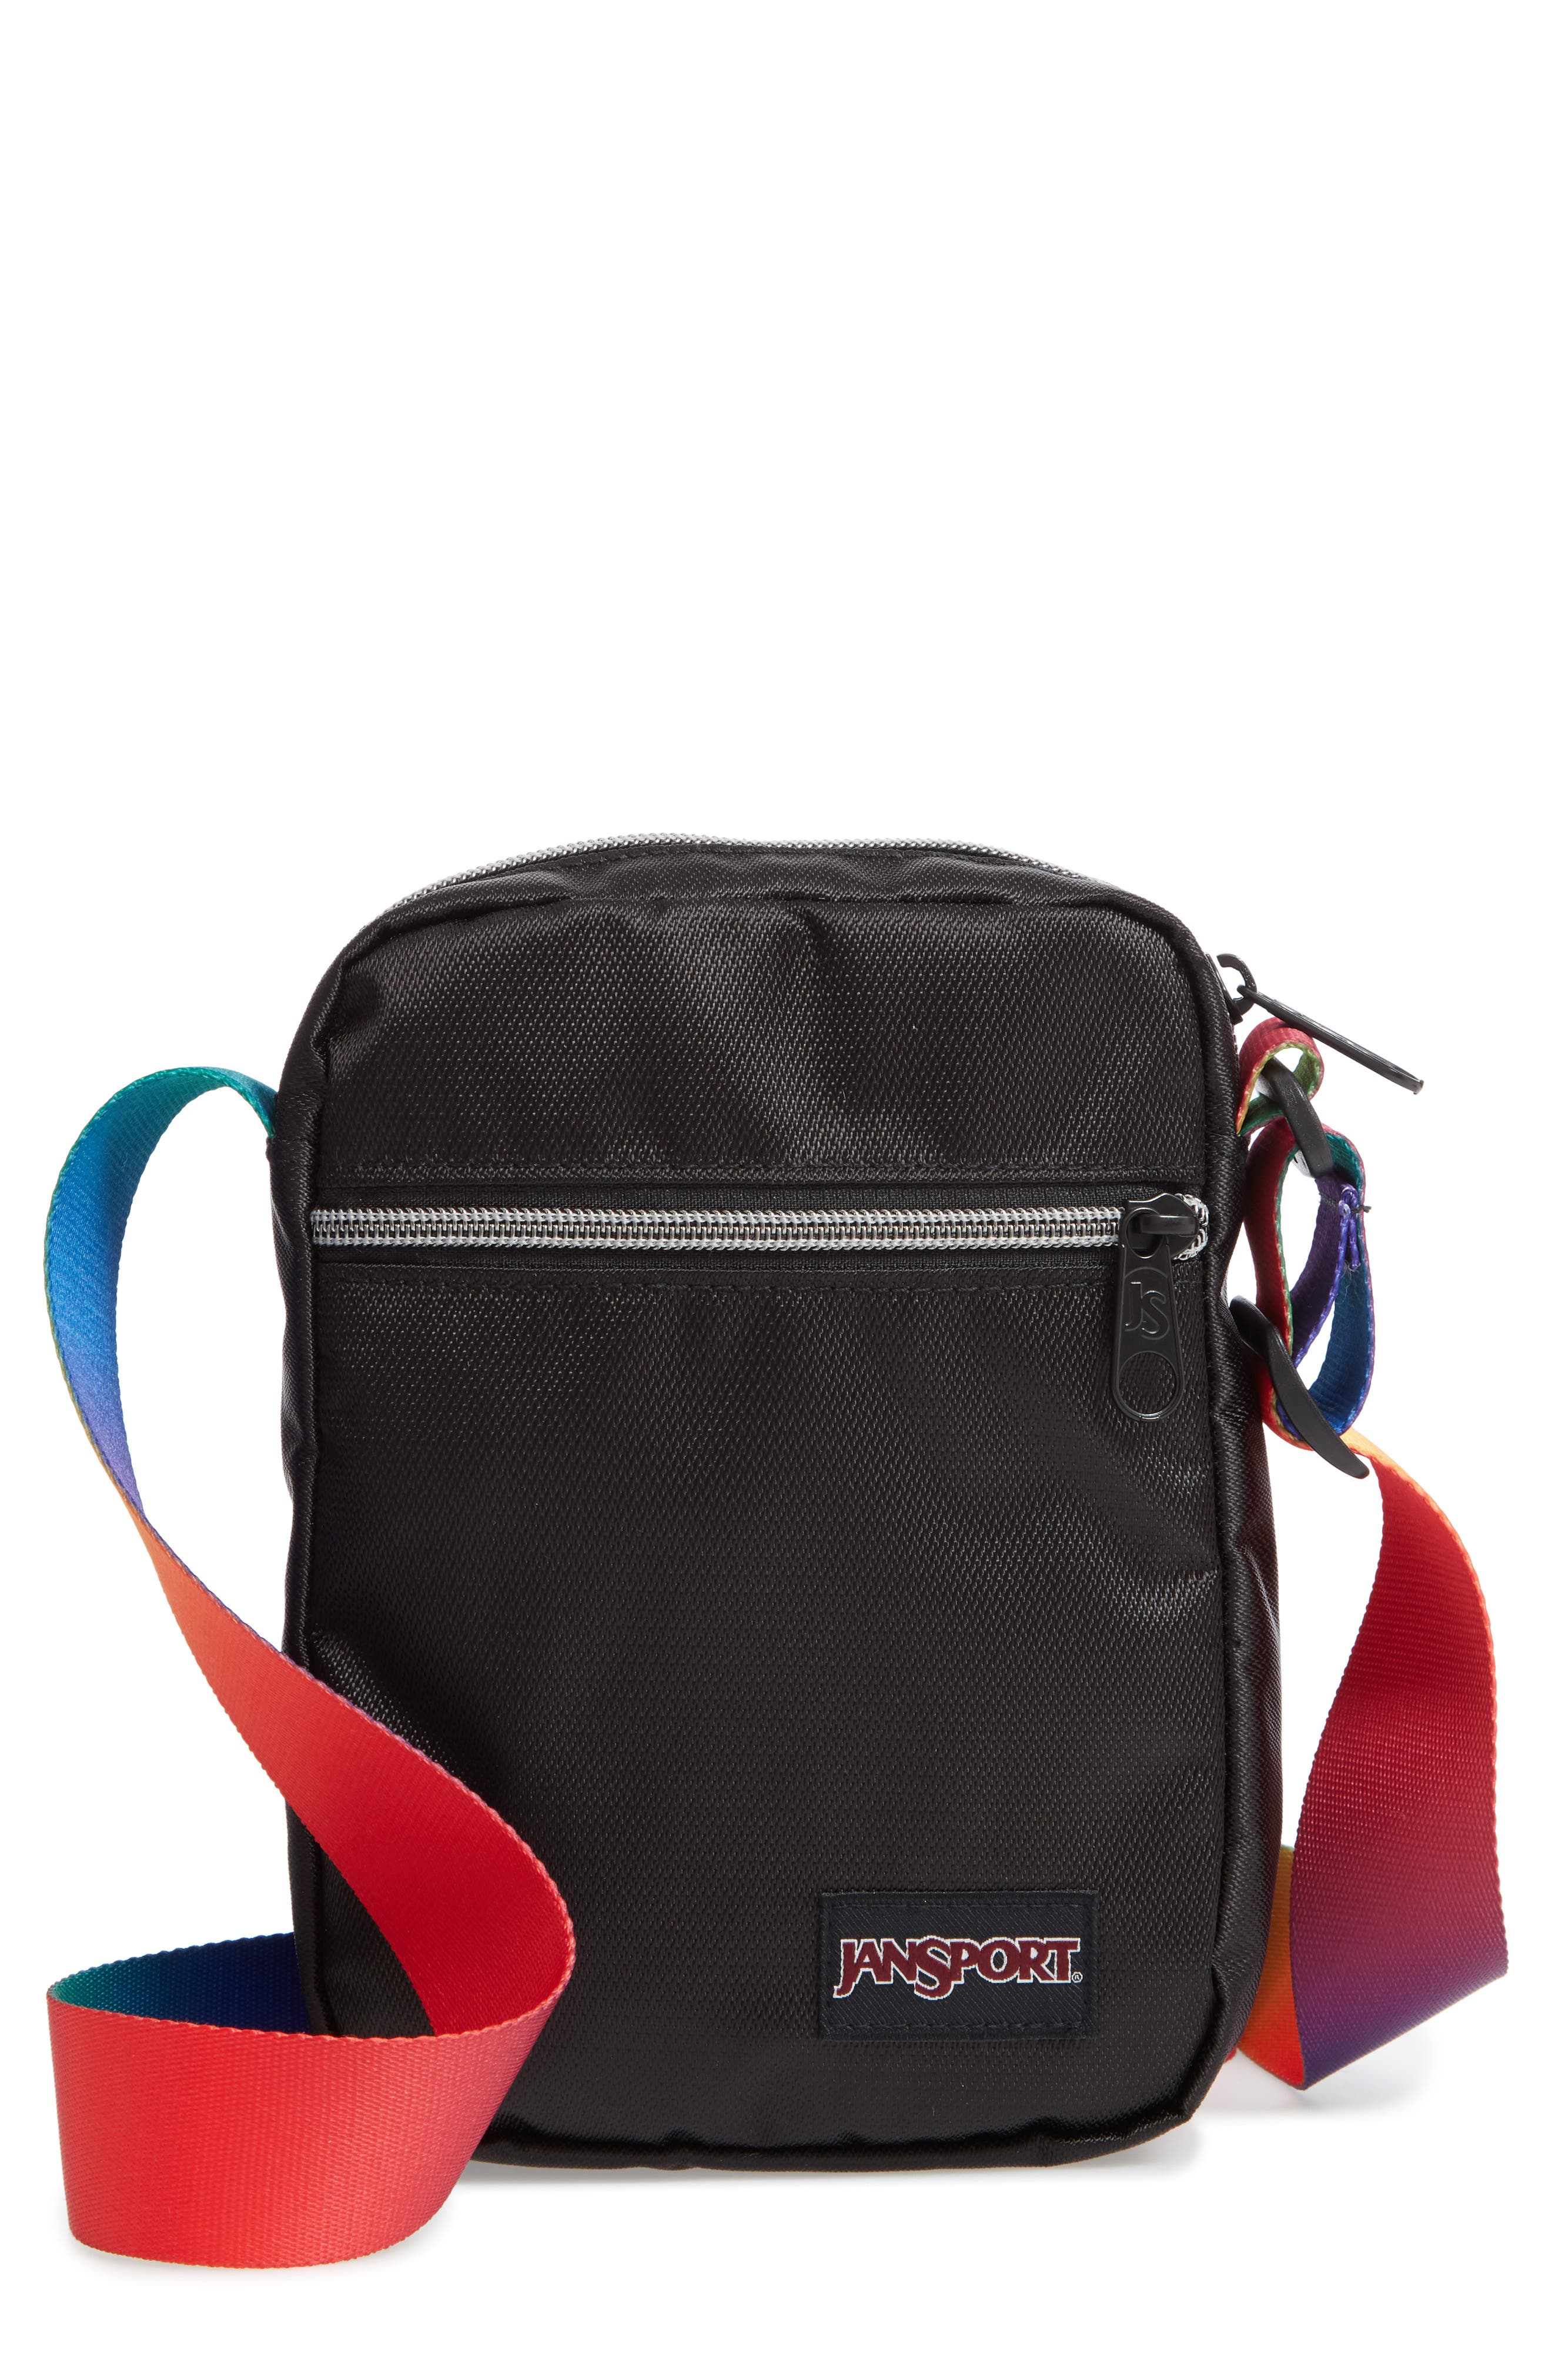 JANSPORT Fx Crossbody Bag - Black in Rainbow Webbing